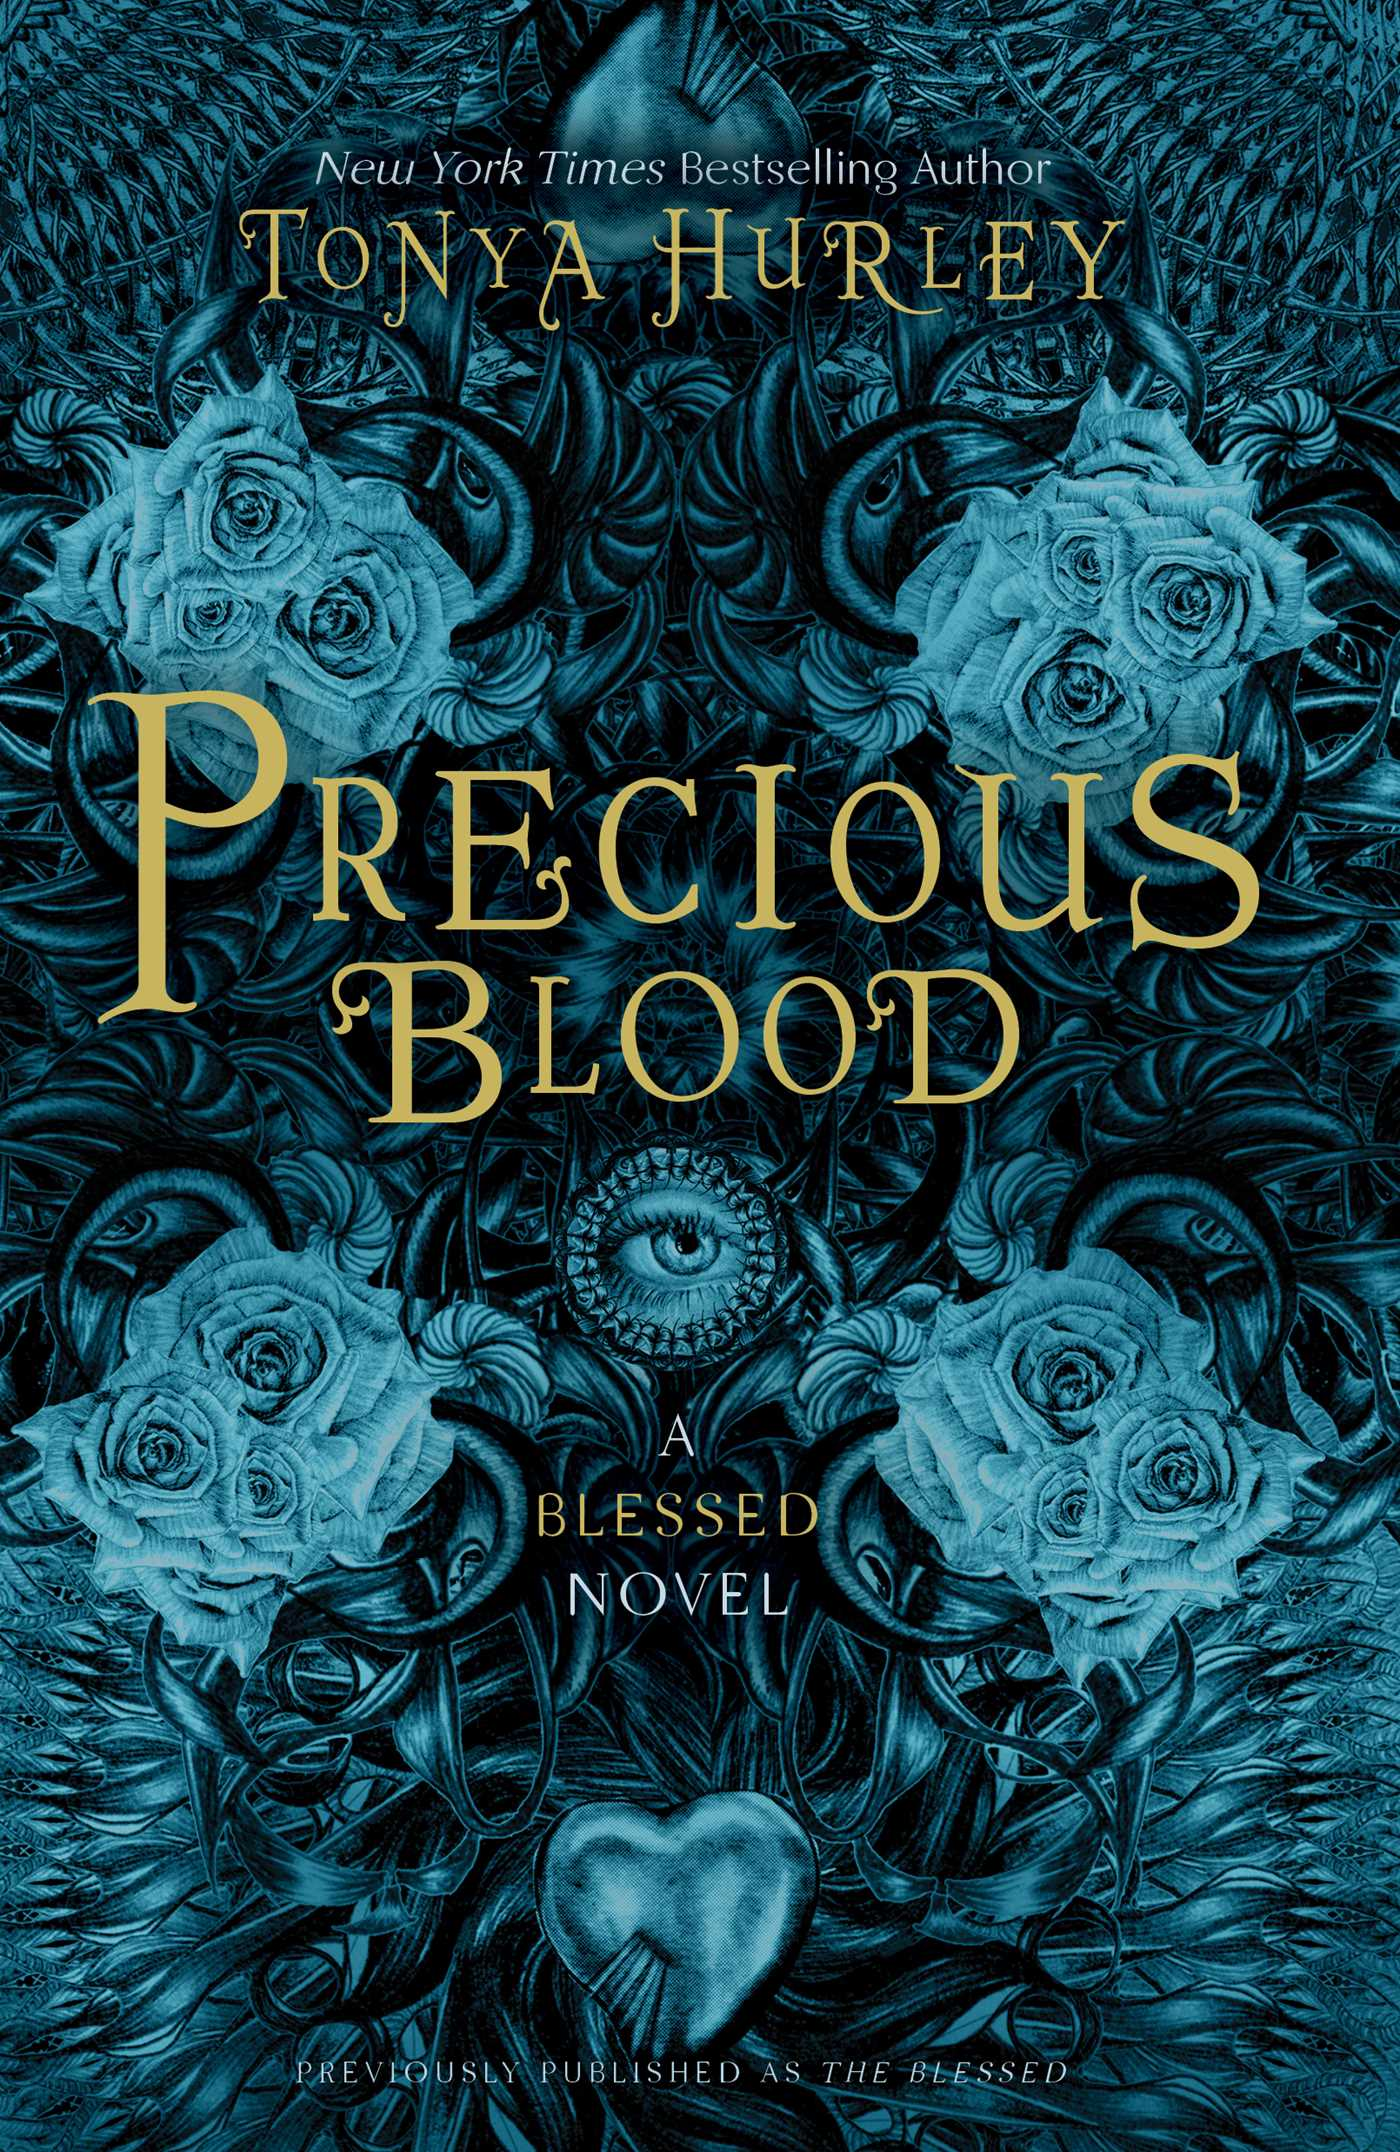 Precious-blood-9781442496675_hr